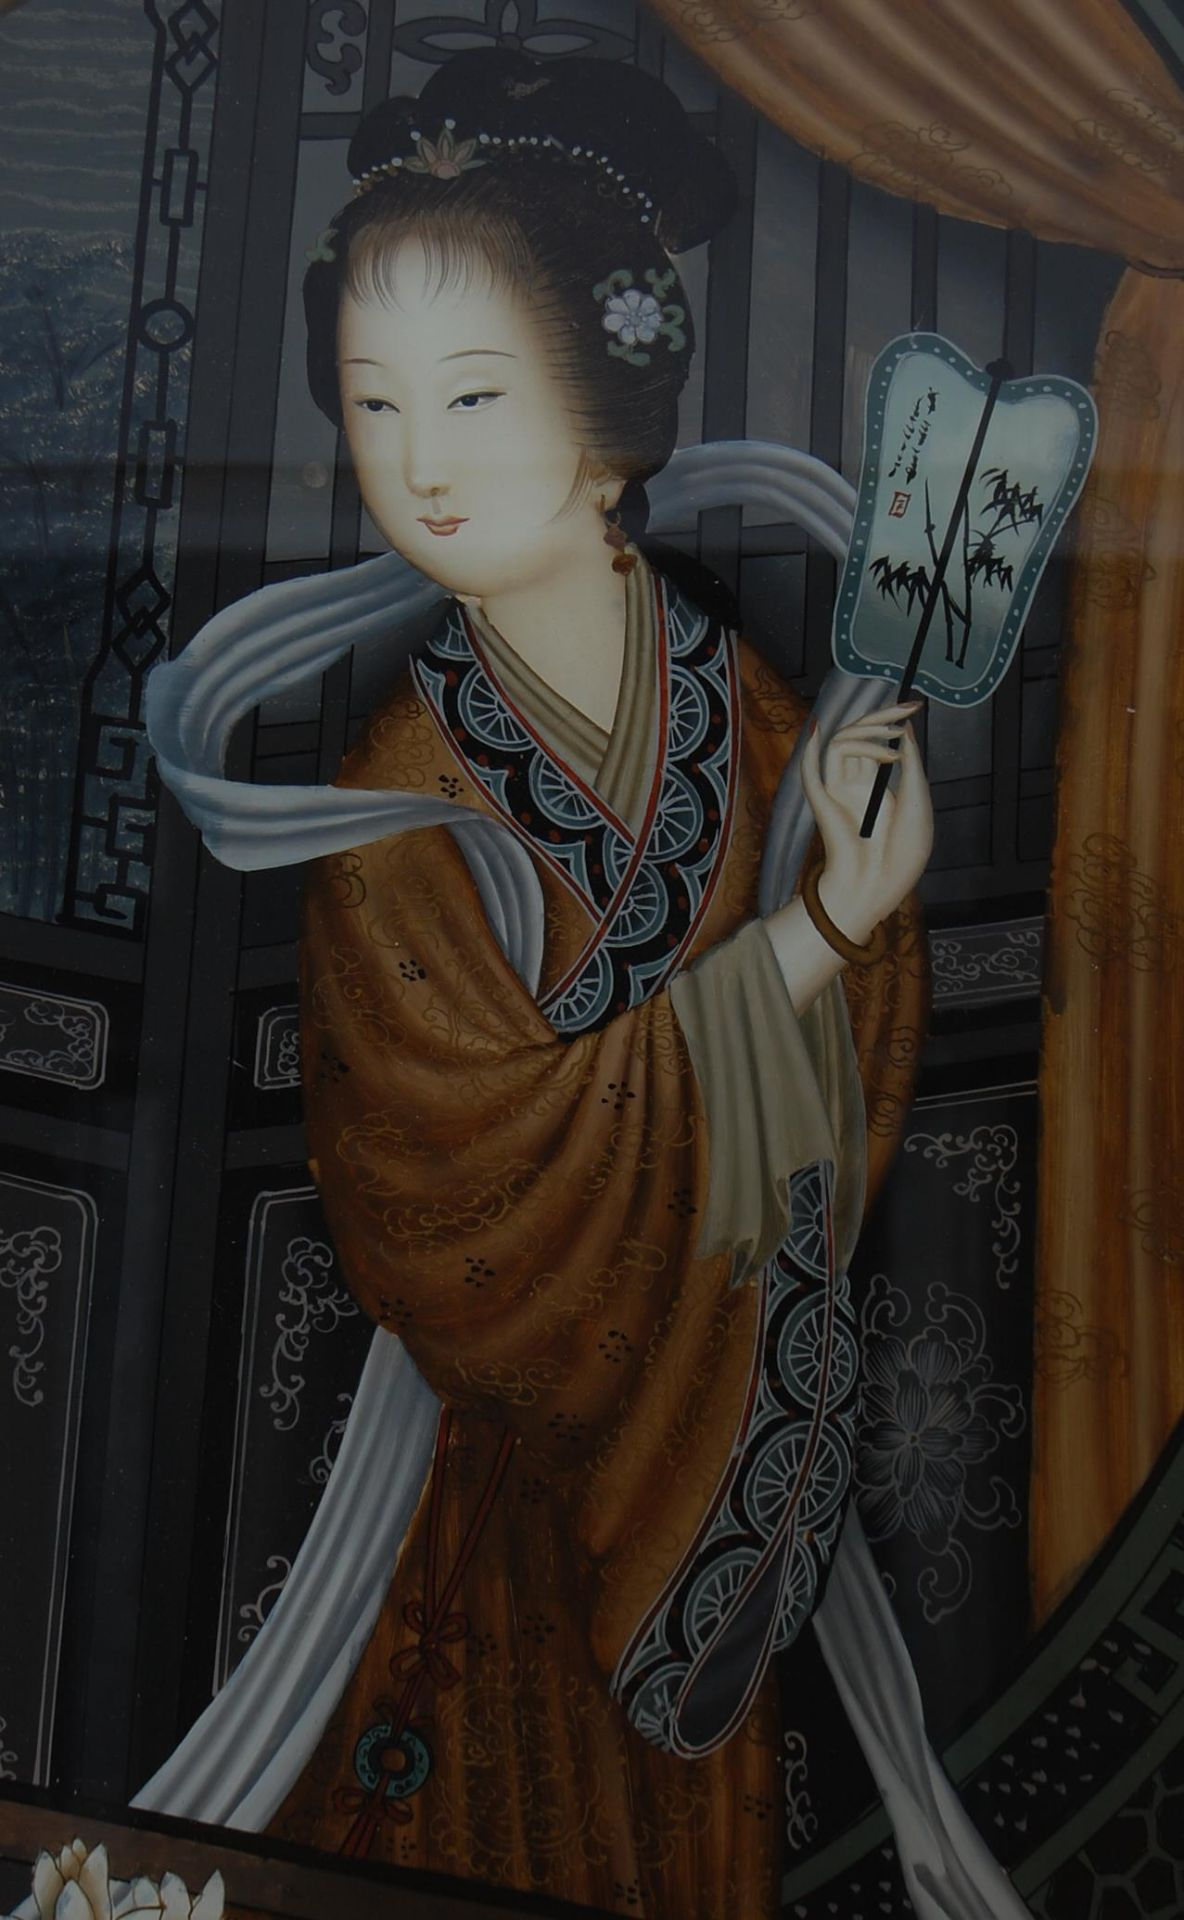 20TH CENTURY ANTIQUE STYLE REVERSED PAIN TING ON GLASS OF A GEISHA - Image 2 of 4